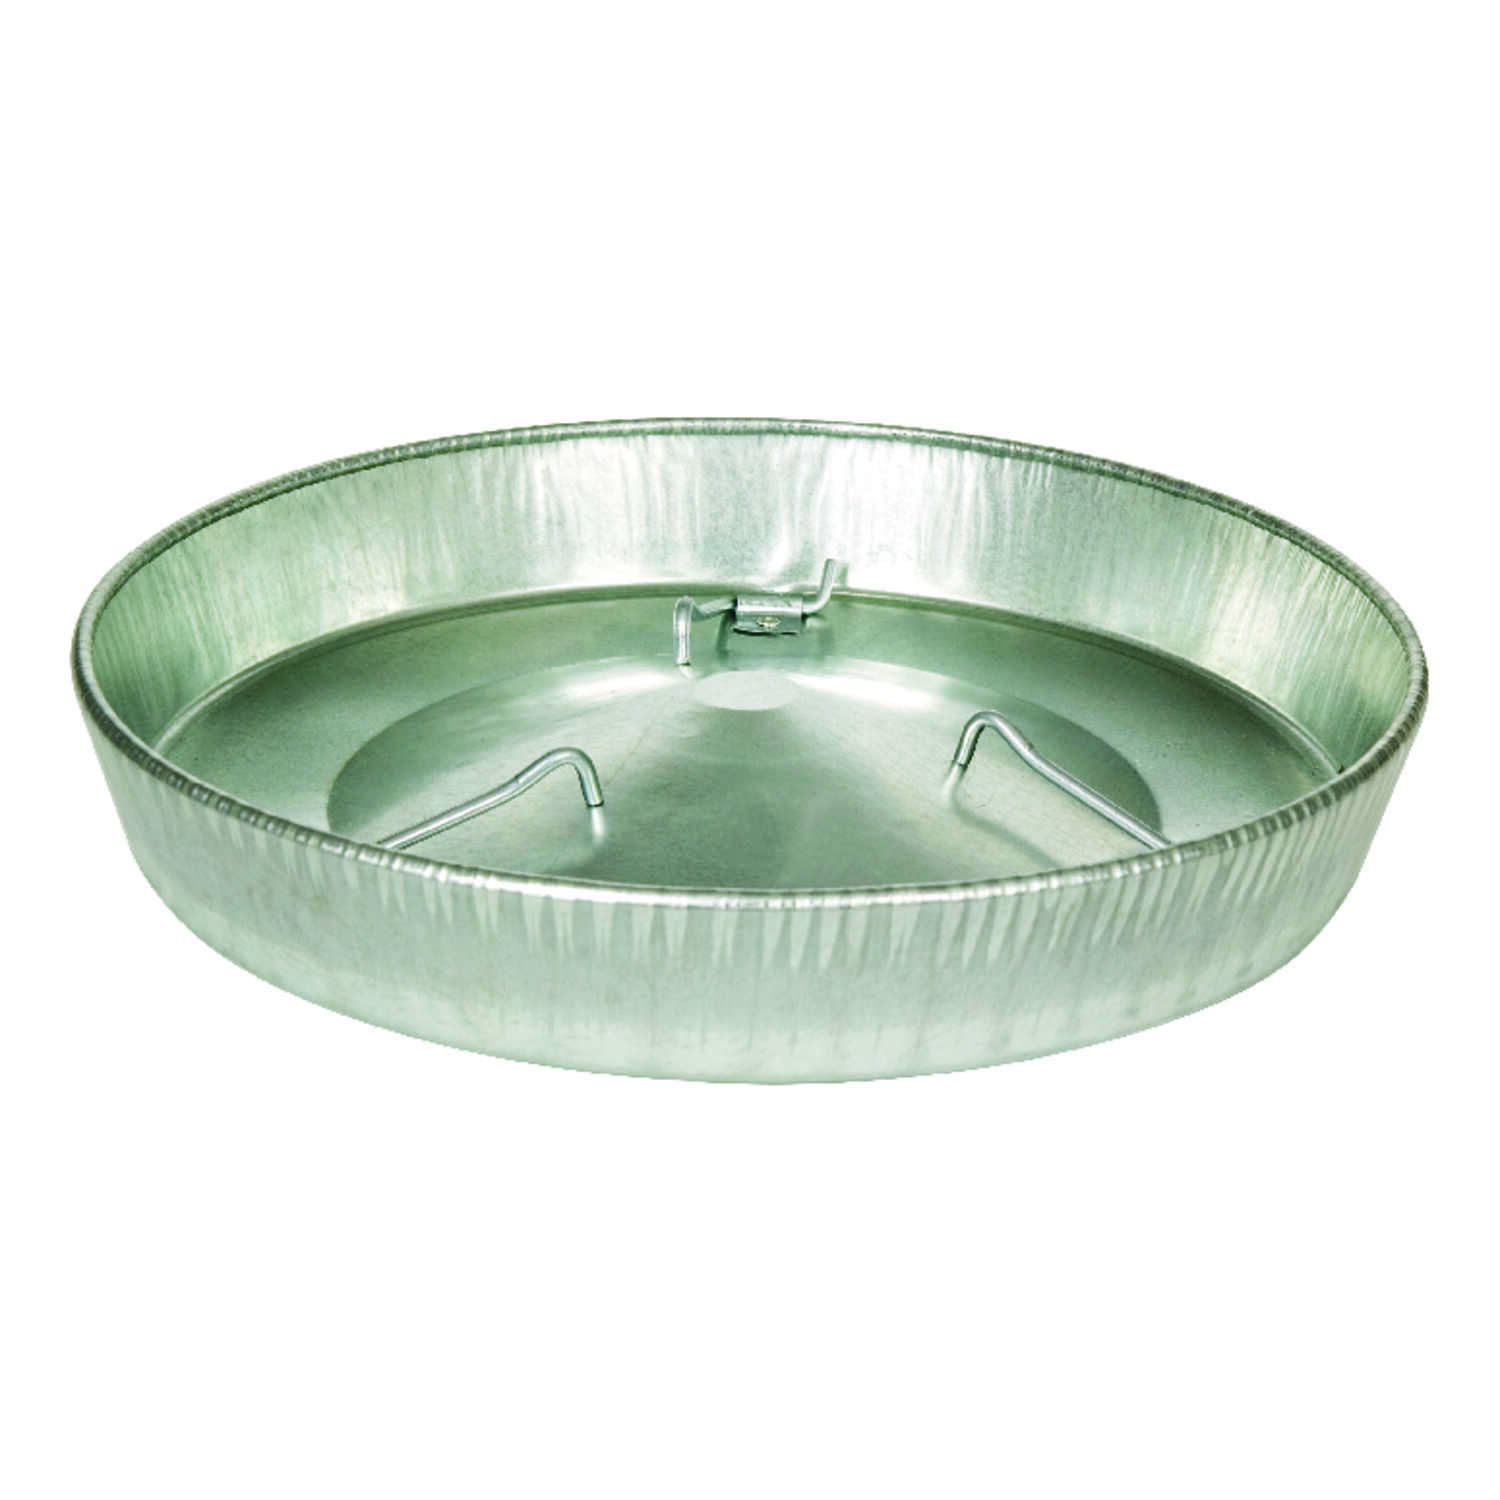 Miller  640 oz. Feeder Pan  14-1/4 in. D x 2-1/4 in. H For Poultry